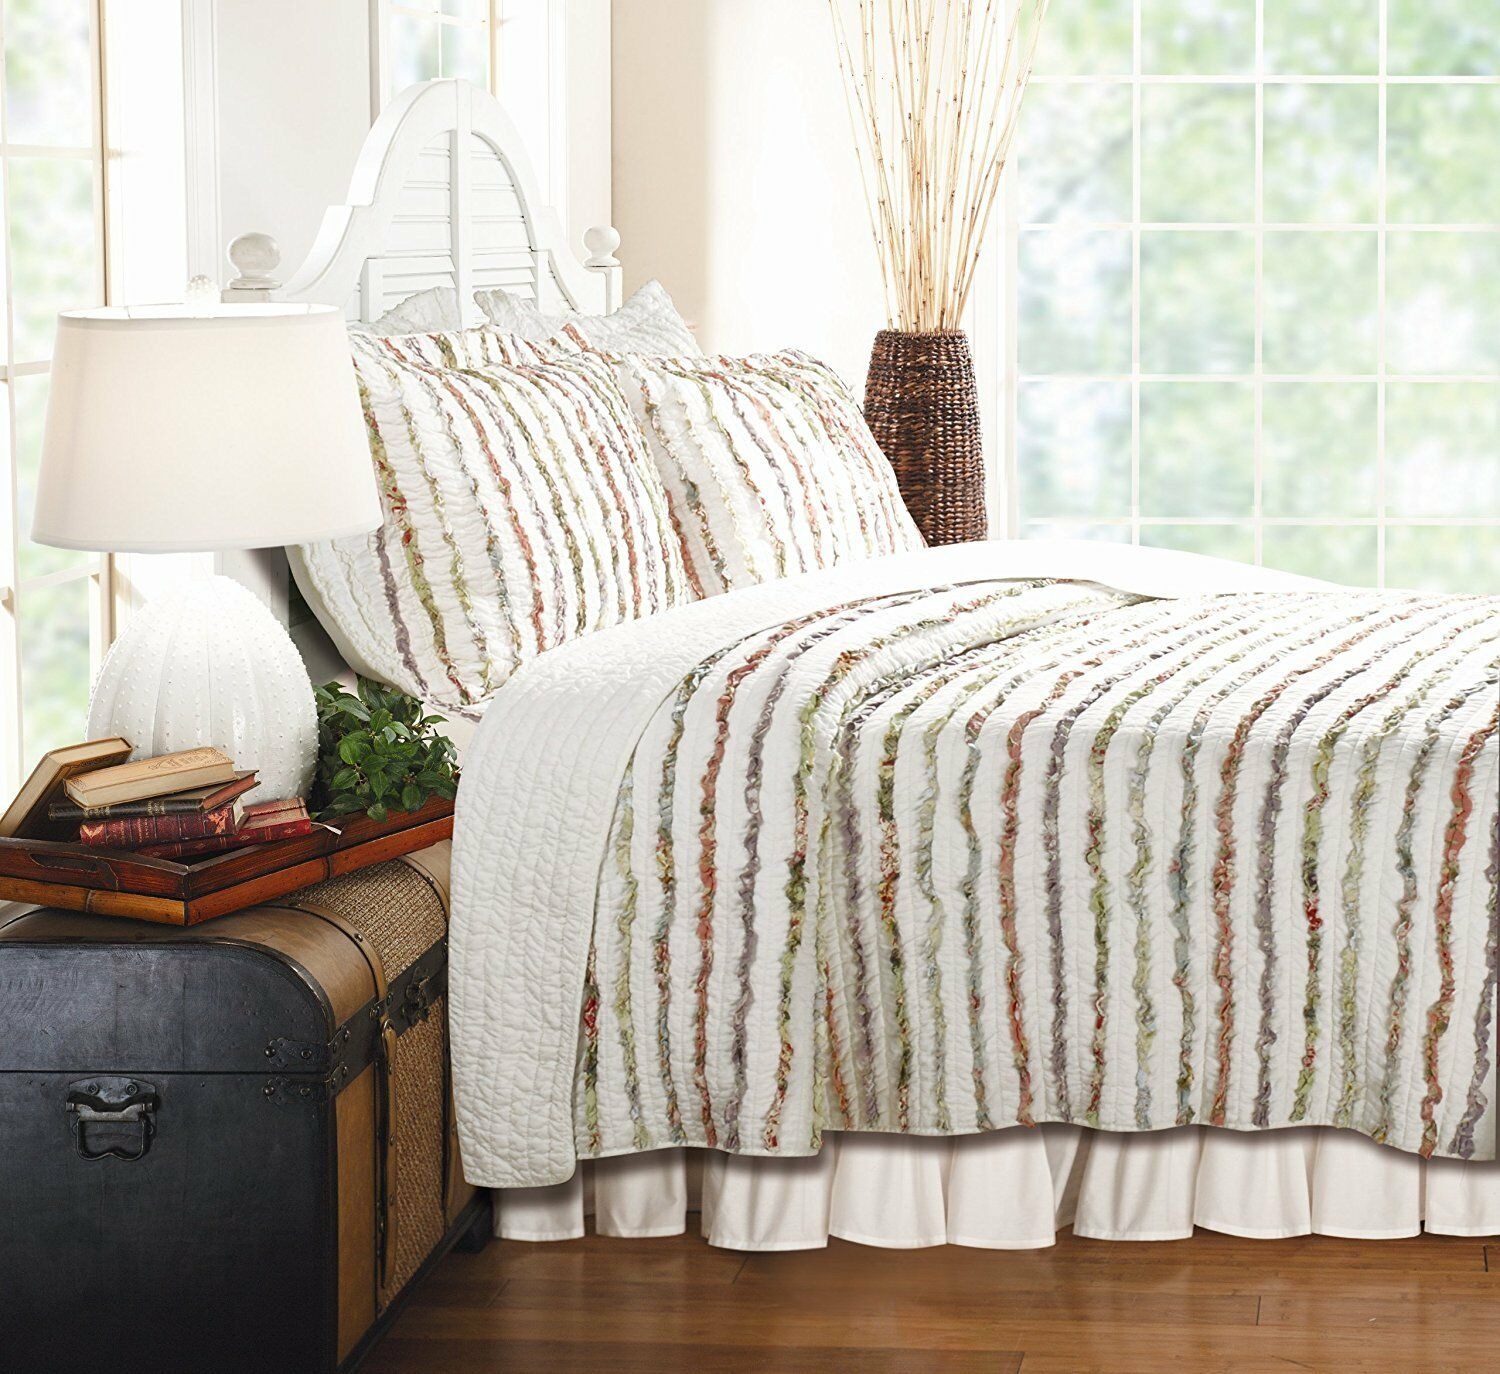 Queen Größe Bedding Quilt Set Bella Ruffle Bed 100% Cotton OverGrößed Floral New